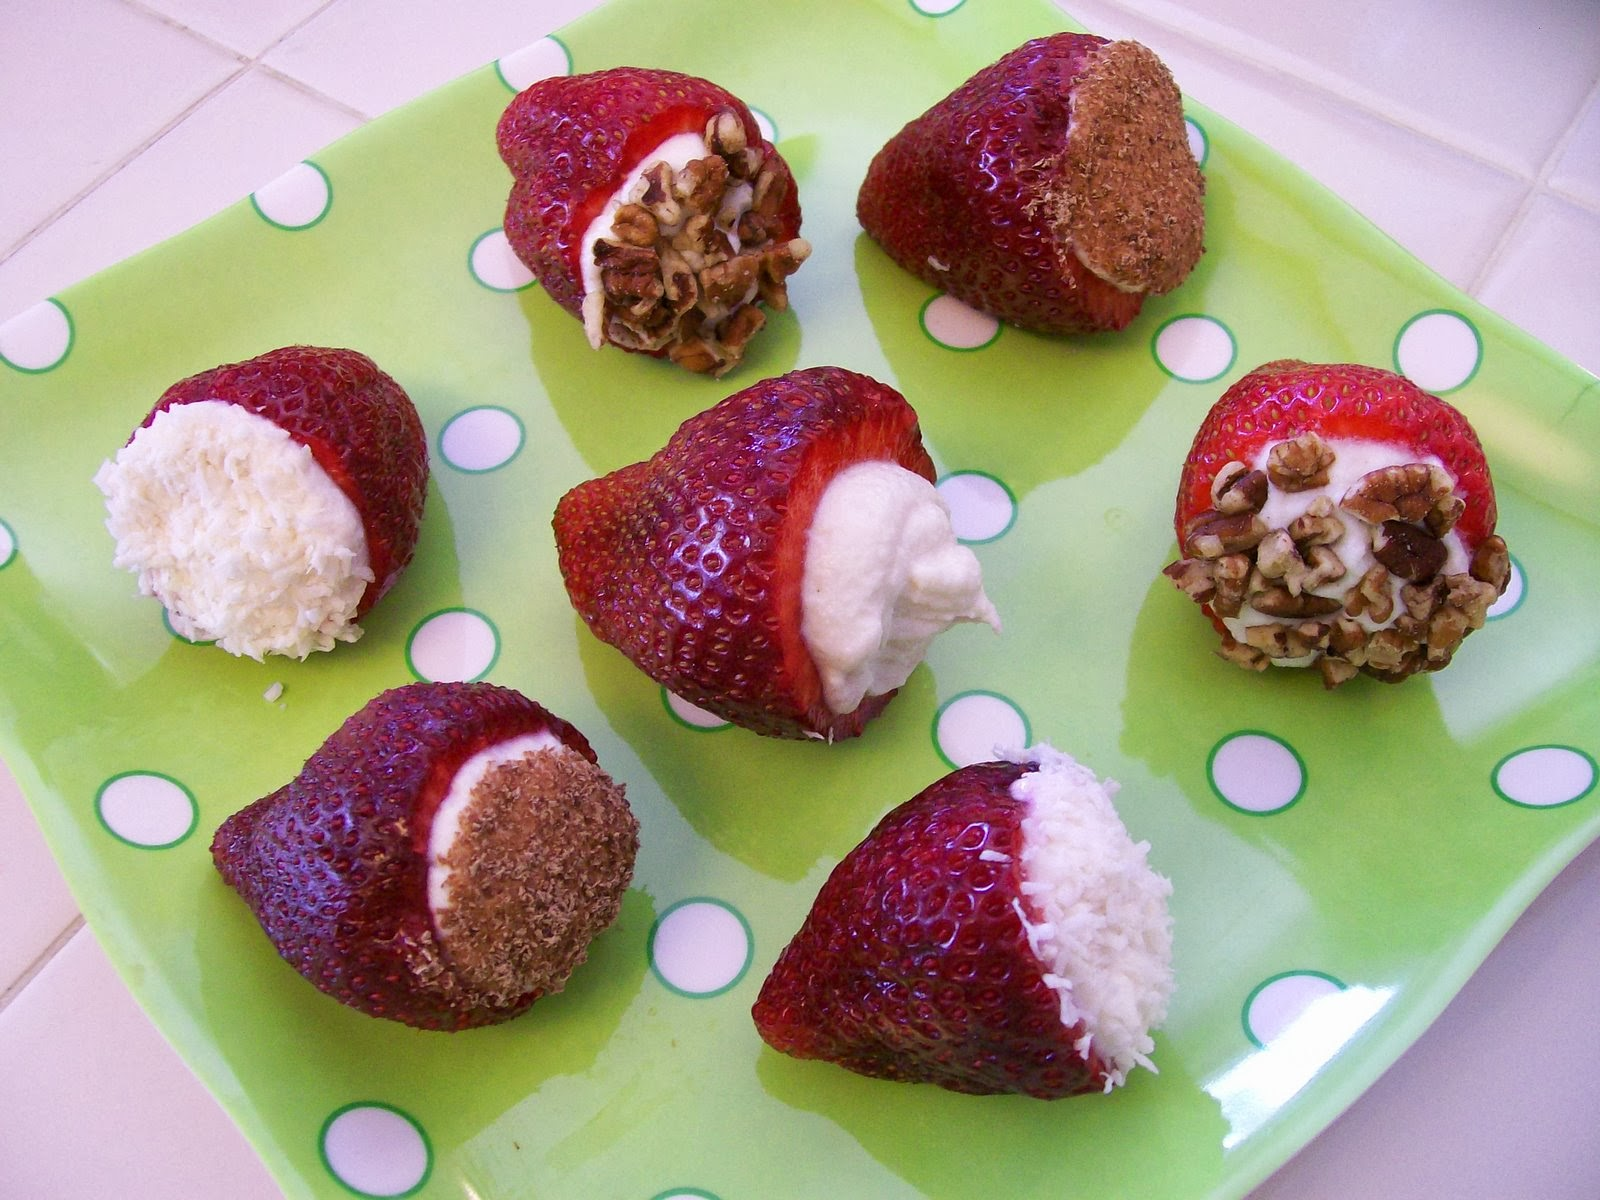 http://theworldaccordingtoeggface.blogspot.com/2009/06/strawberry-cannoli.html